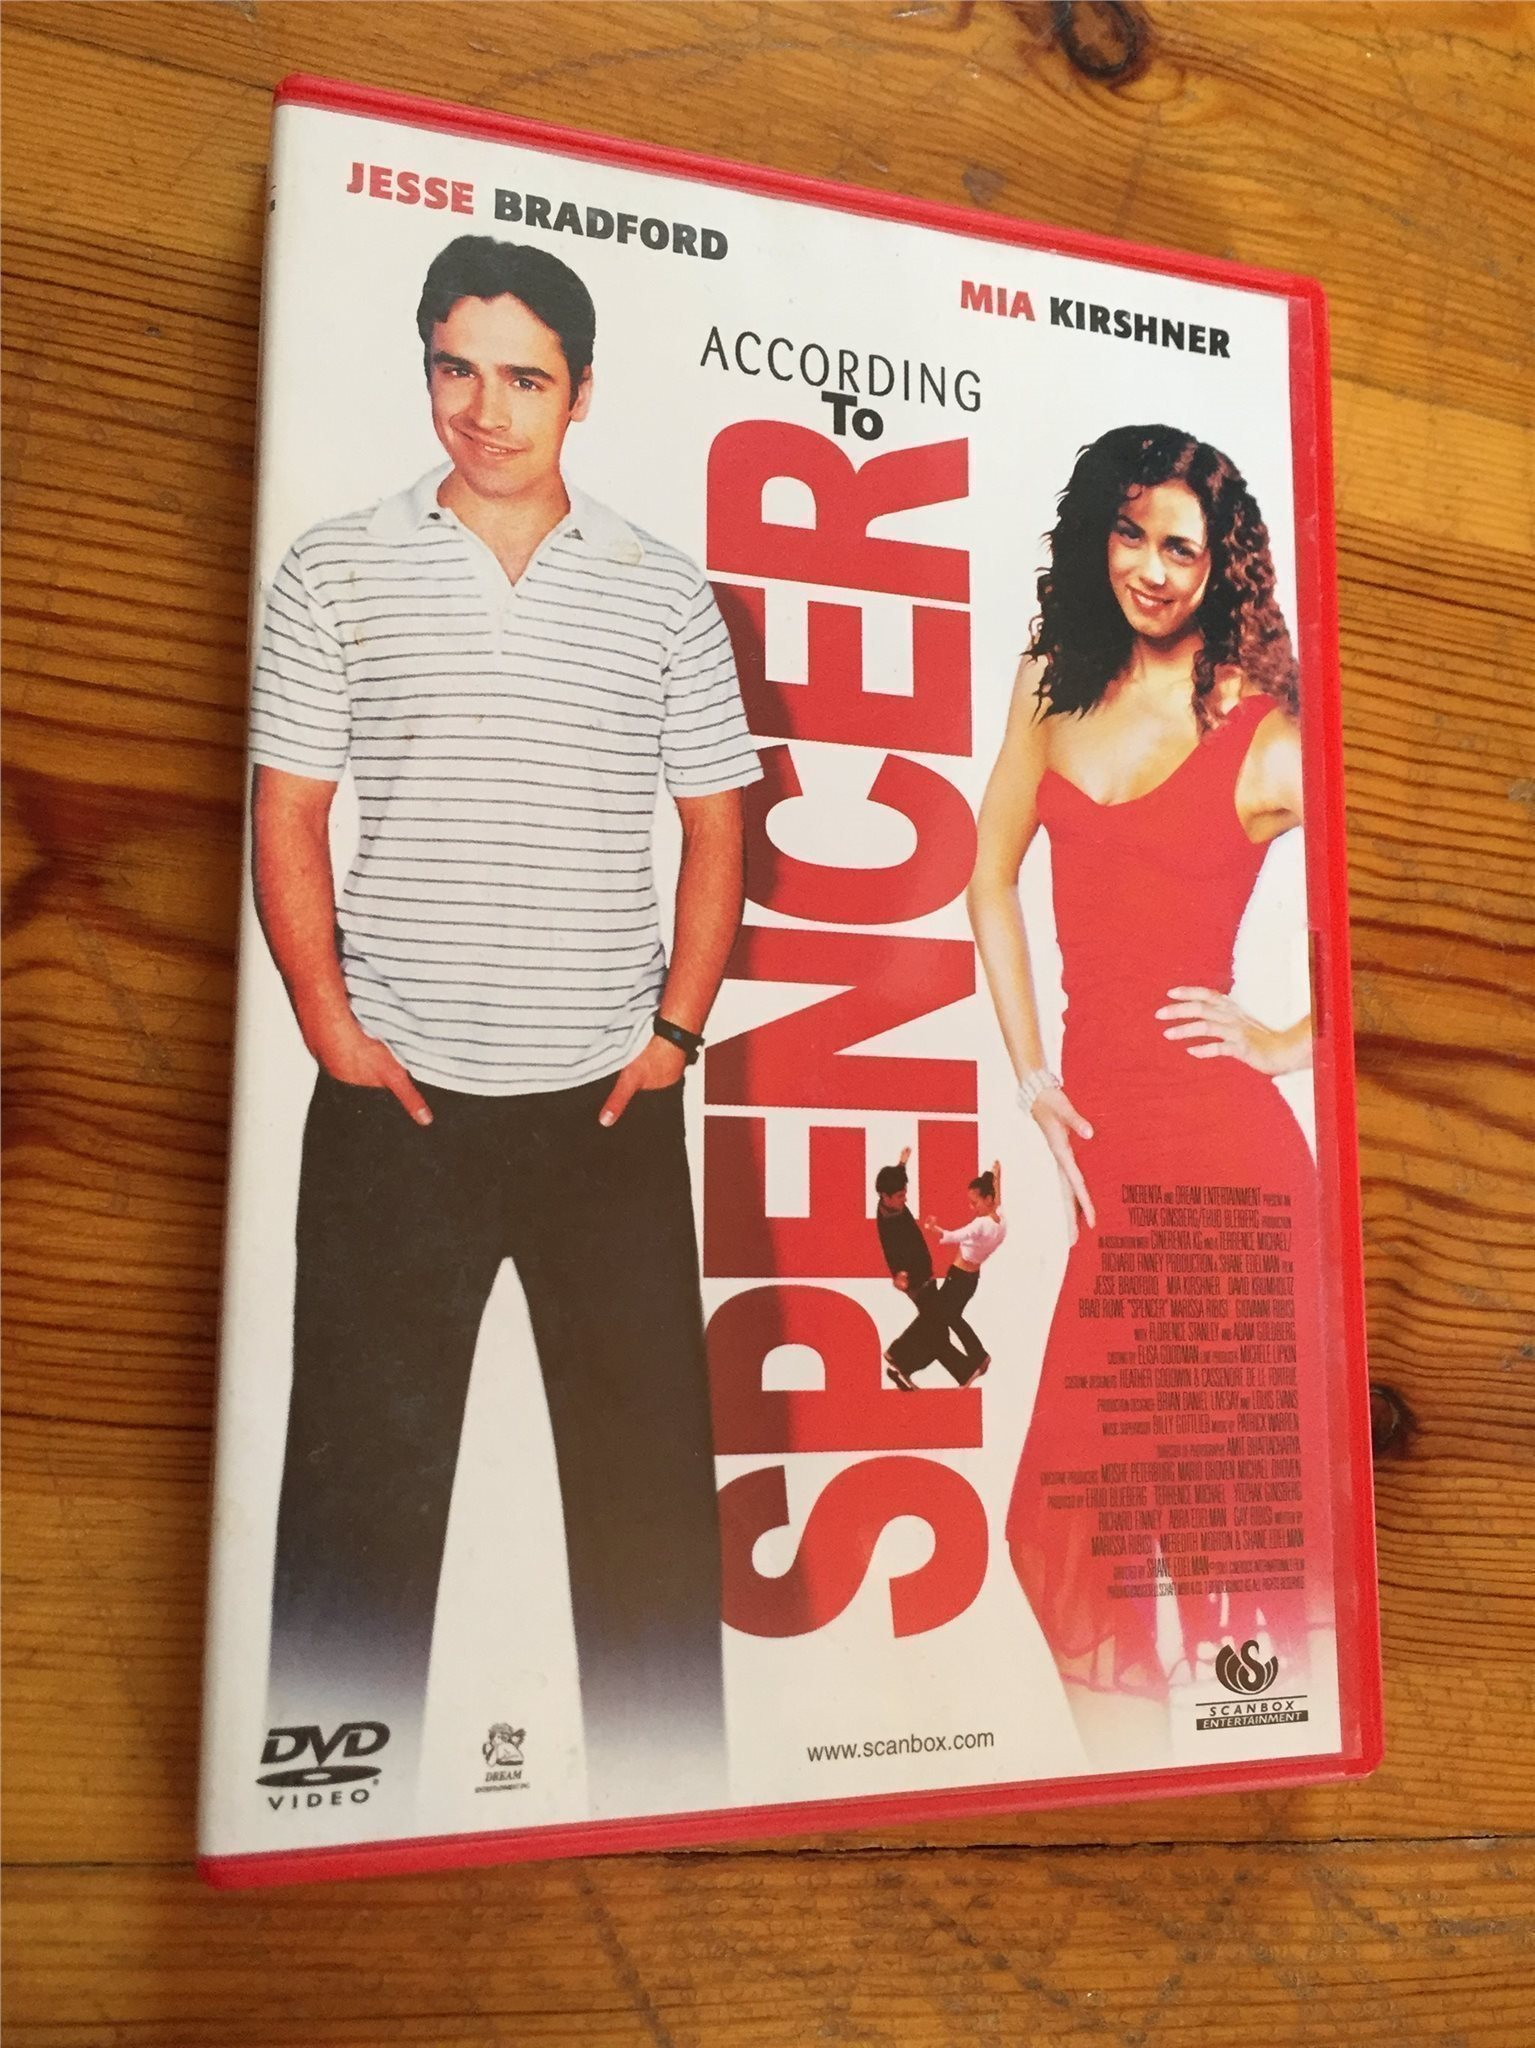 According to Spencer - Jesse Bradford - (original DVD)